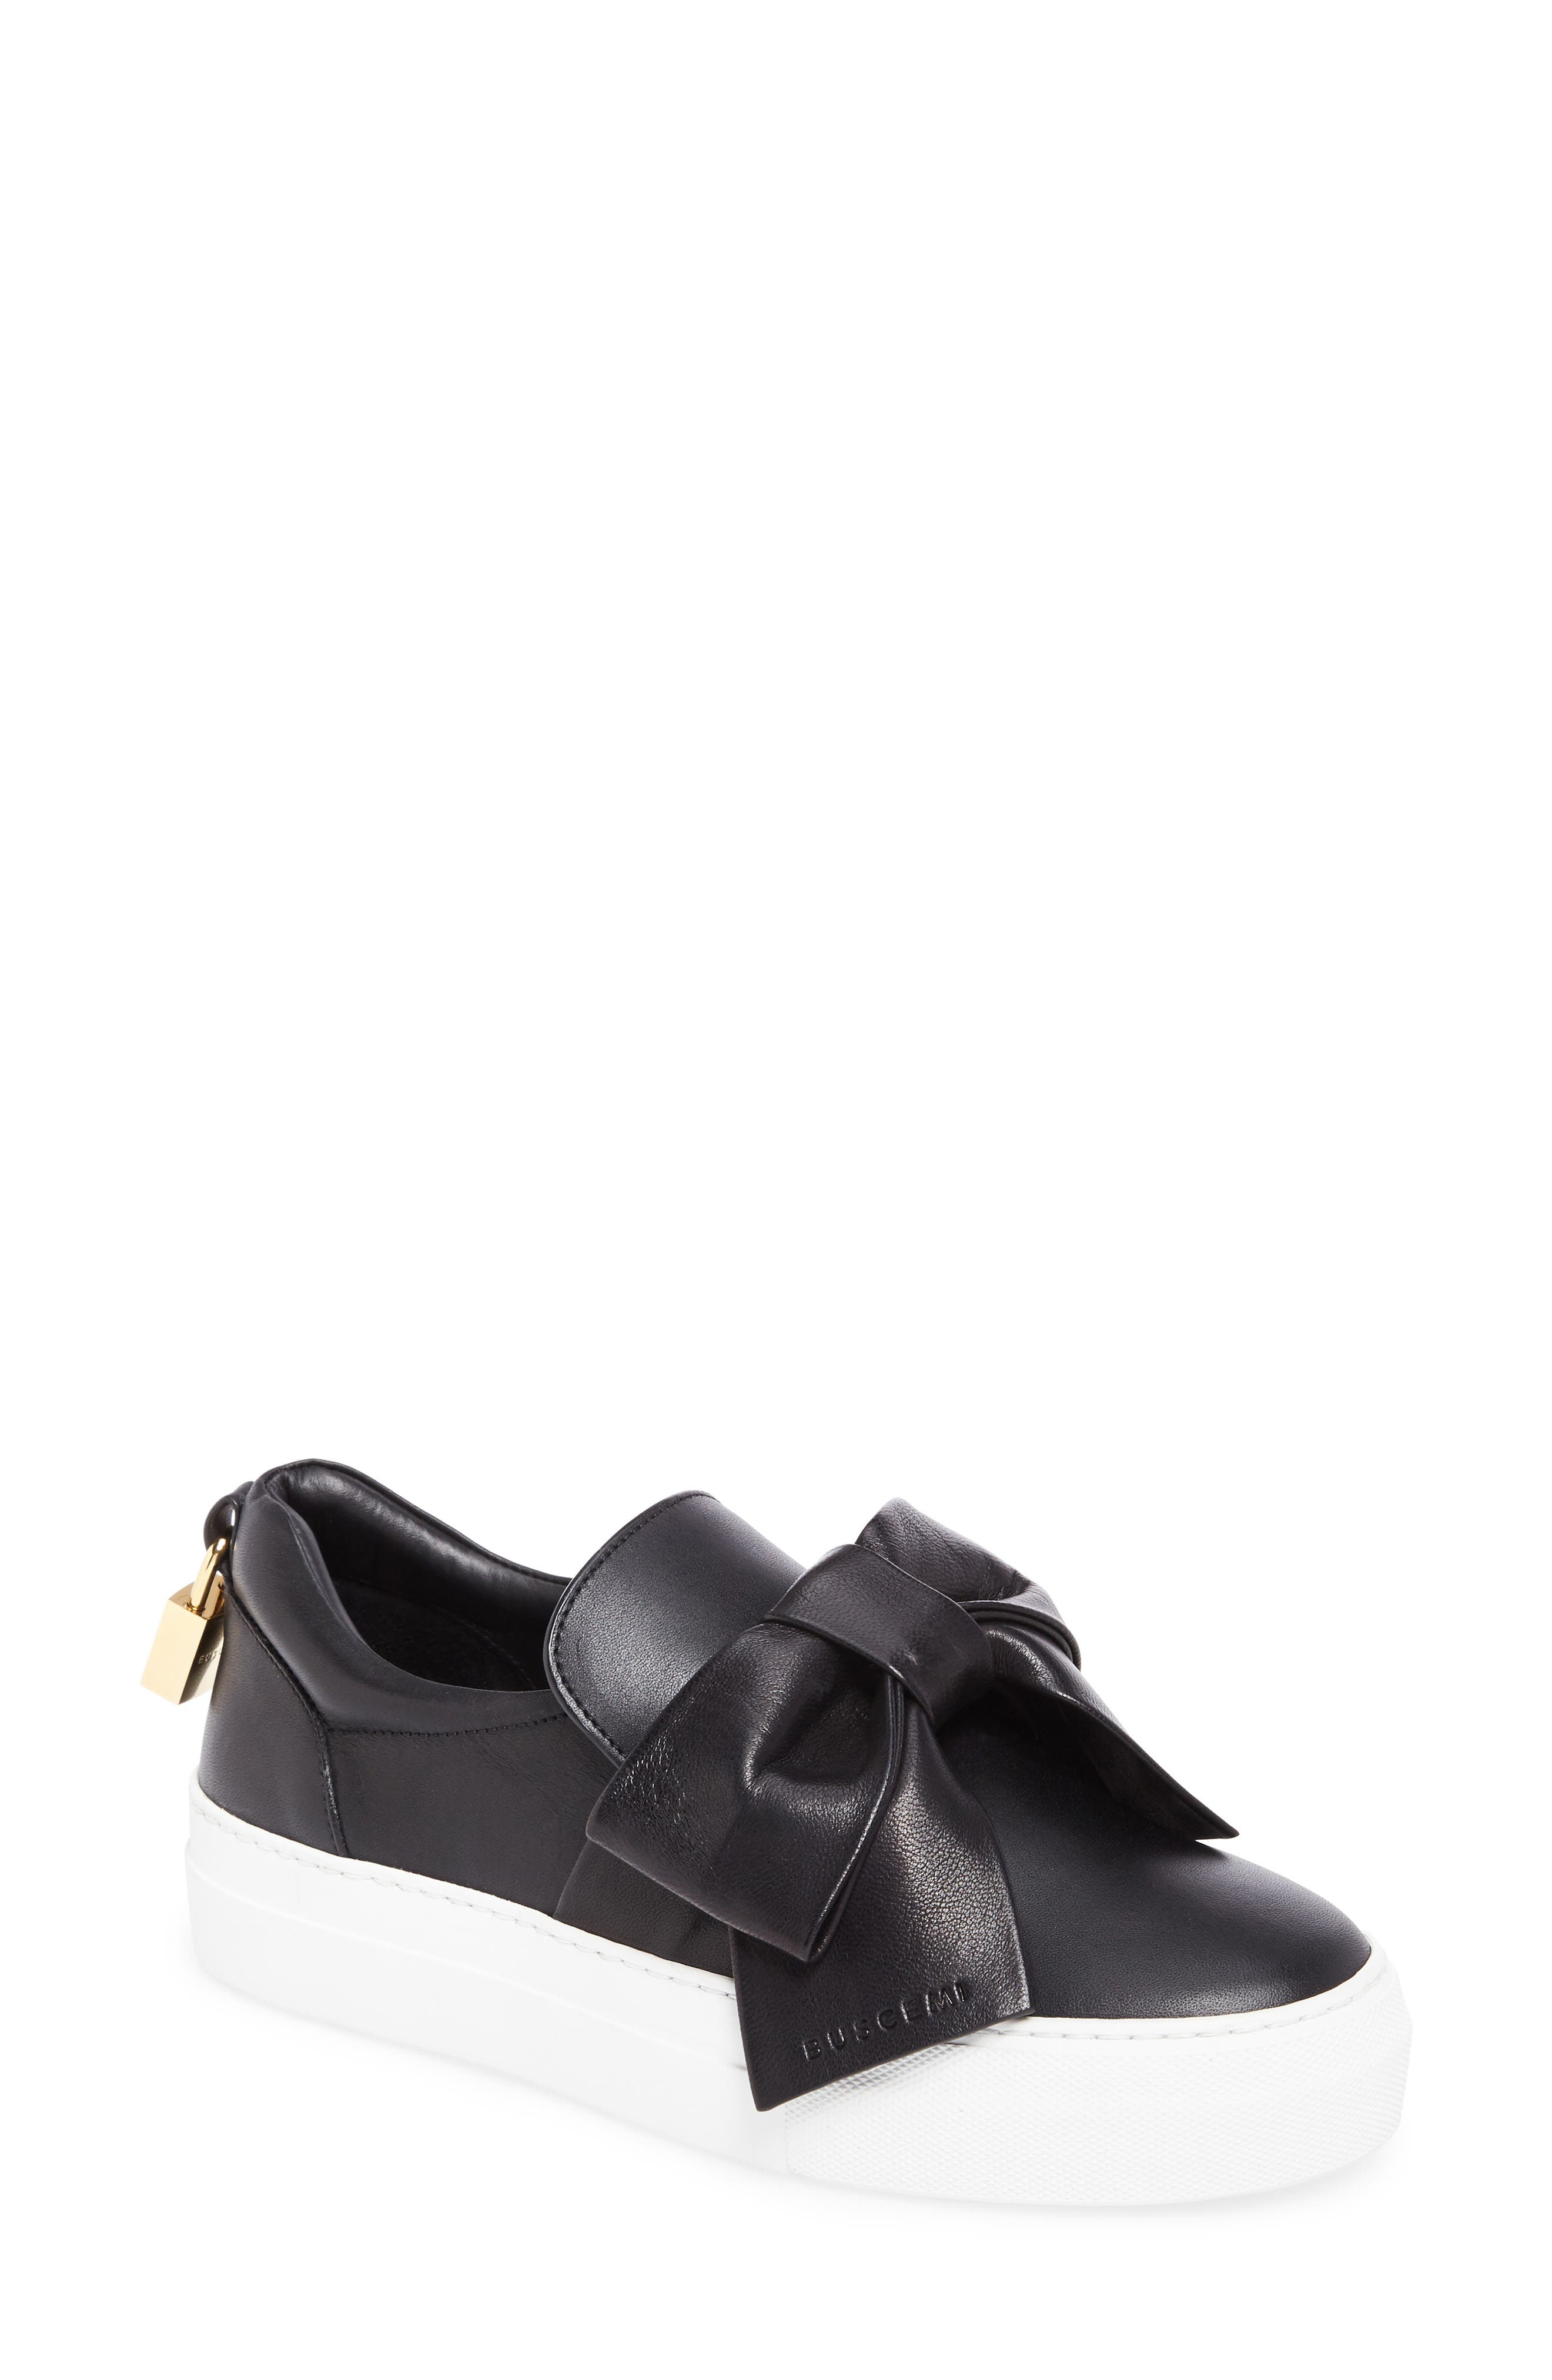 Alternate Image 1 Selected - Buscemi Bow Slip-On Sneaker (Women)